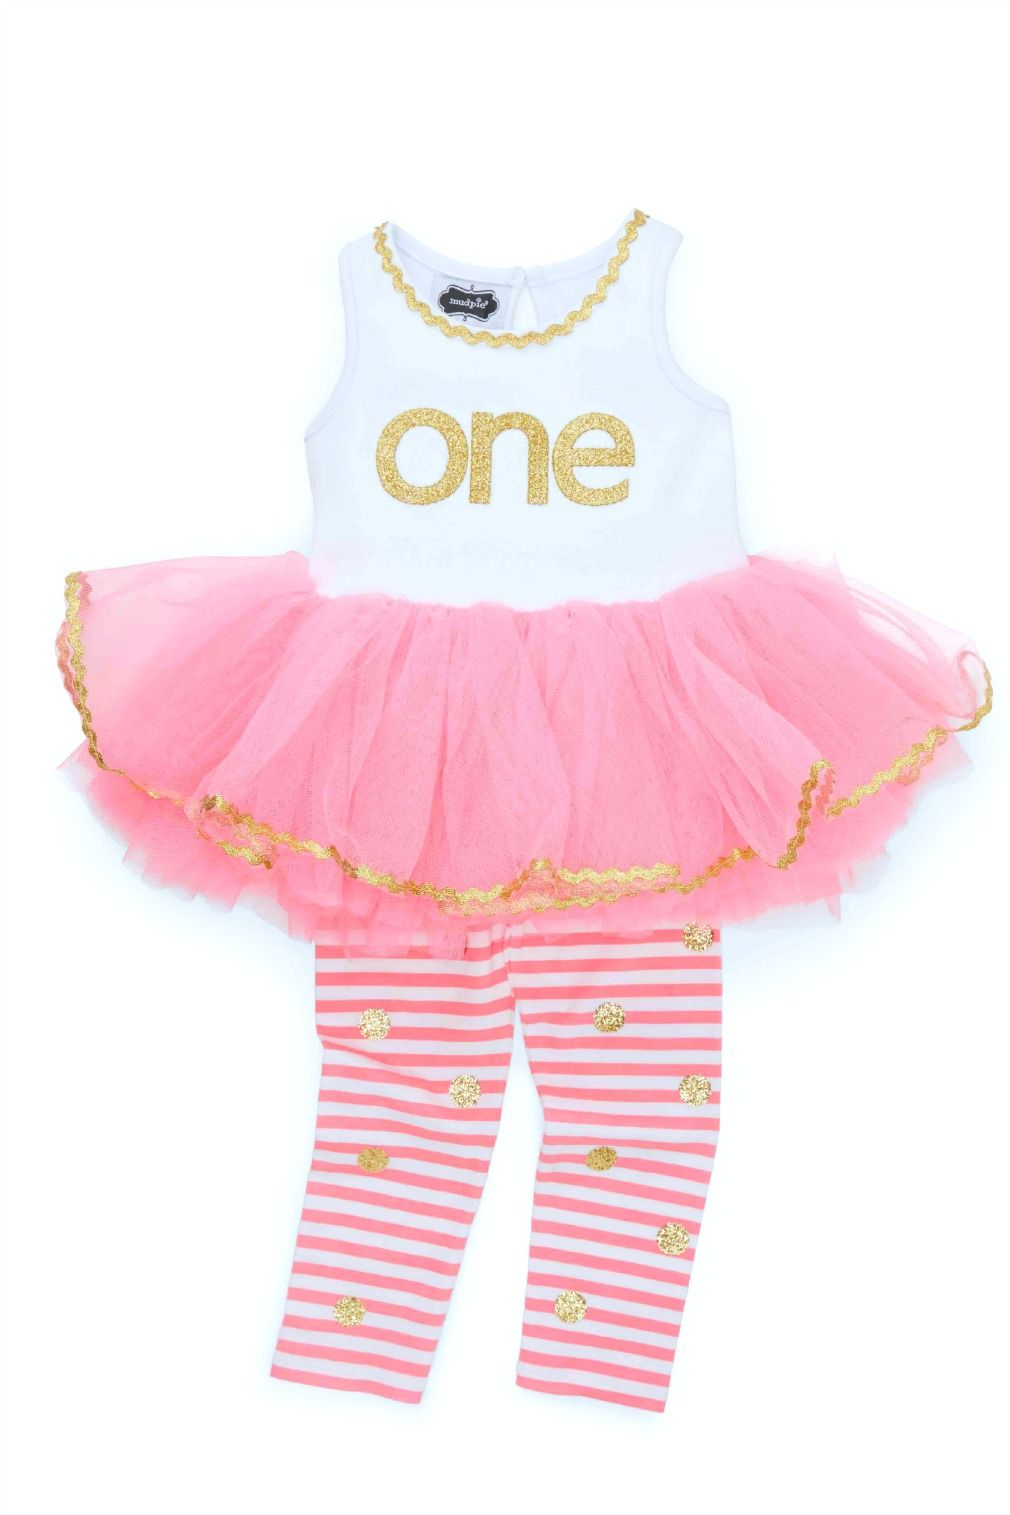 Mud Pie BabyGirls 1st Birthday Dress First Birthday